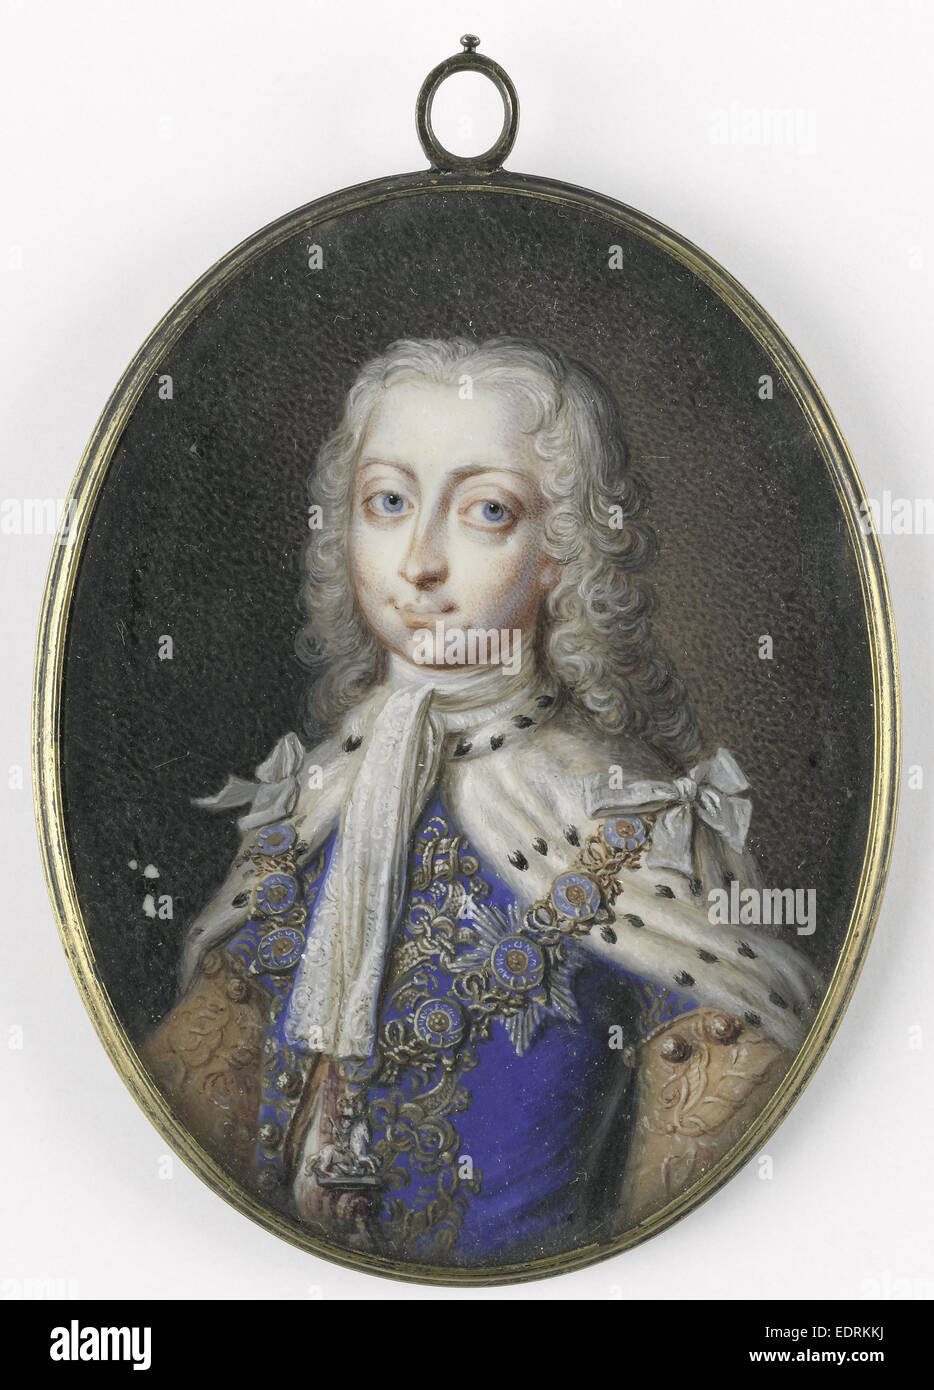 Frederick Louis, 1707-51, Prince of Wales. Son of King George II, Anonymous, 1735 - 1740, Portrait miniature - Stock Image